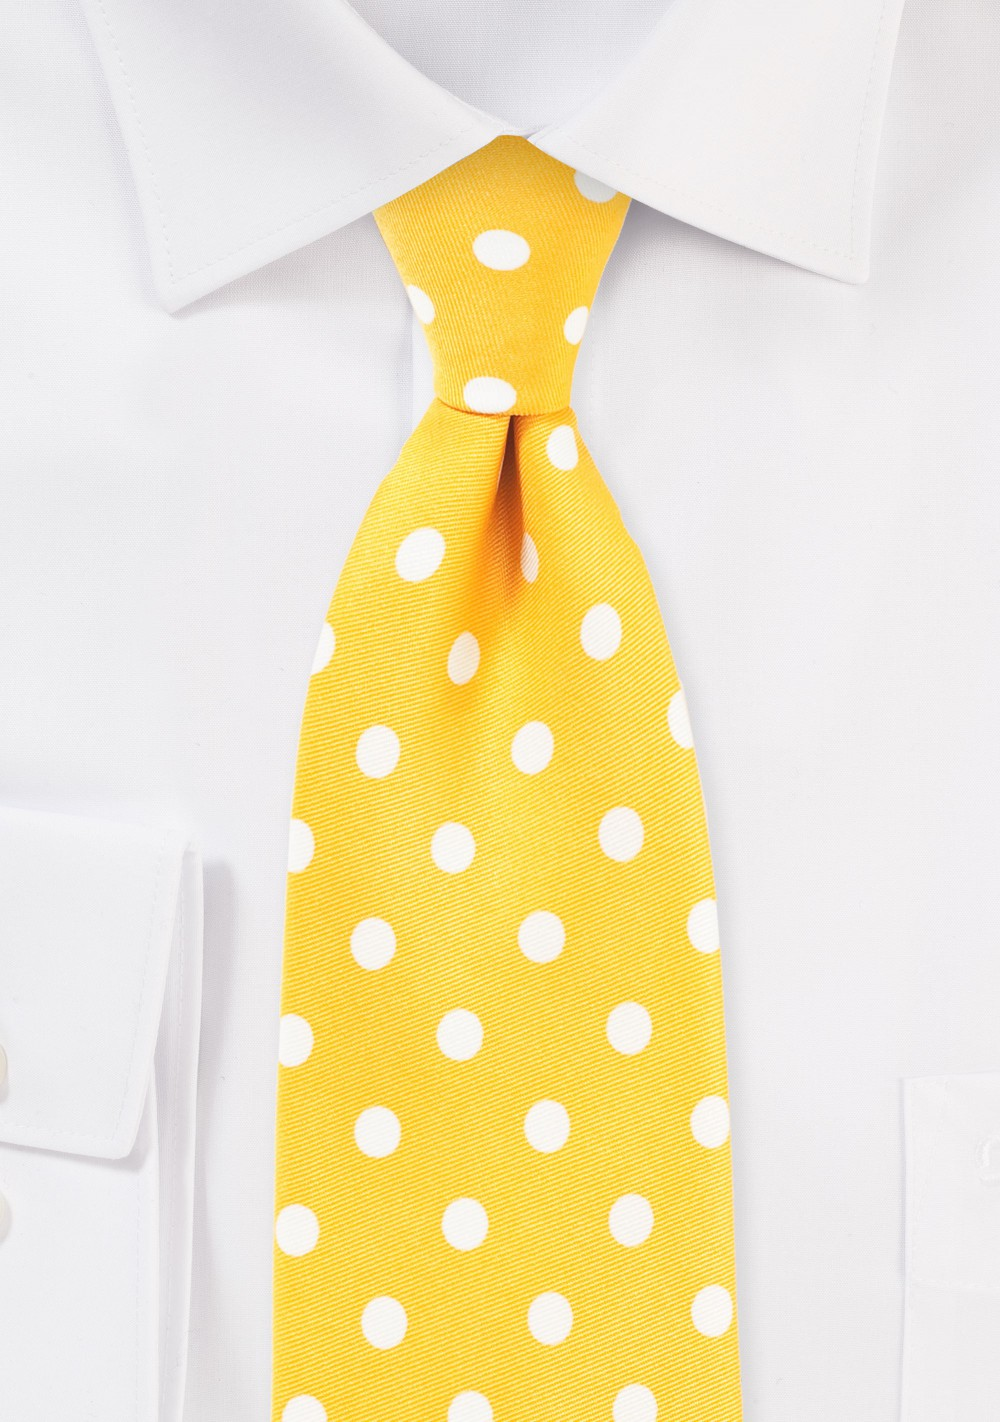 Bright Yellow Tie with White Polka Dots